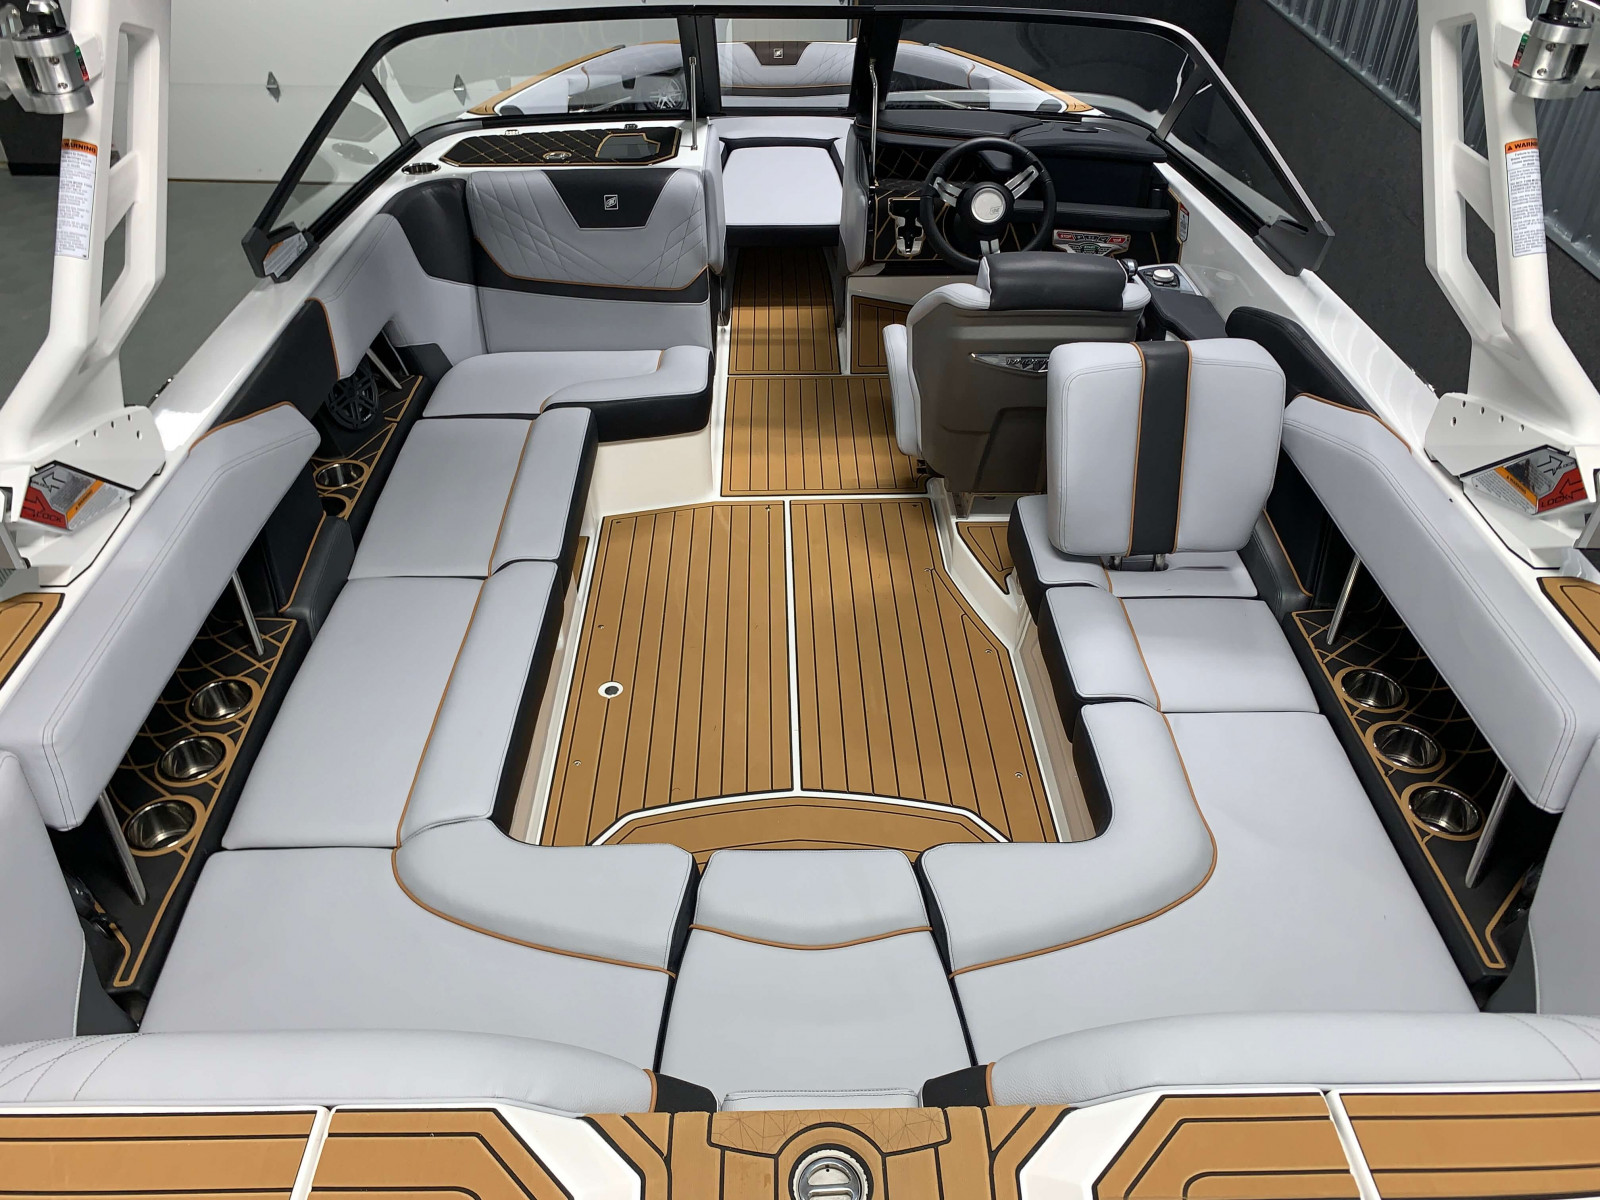 Interior Layout of the 2021 Nautique GS22 Wake Boat